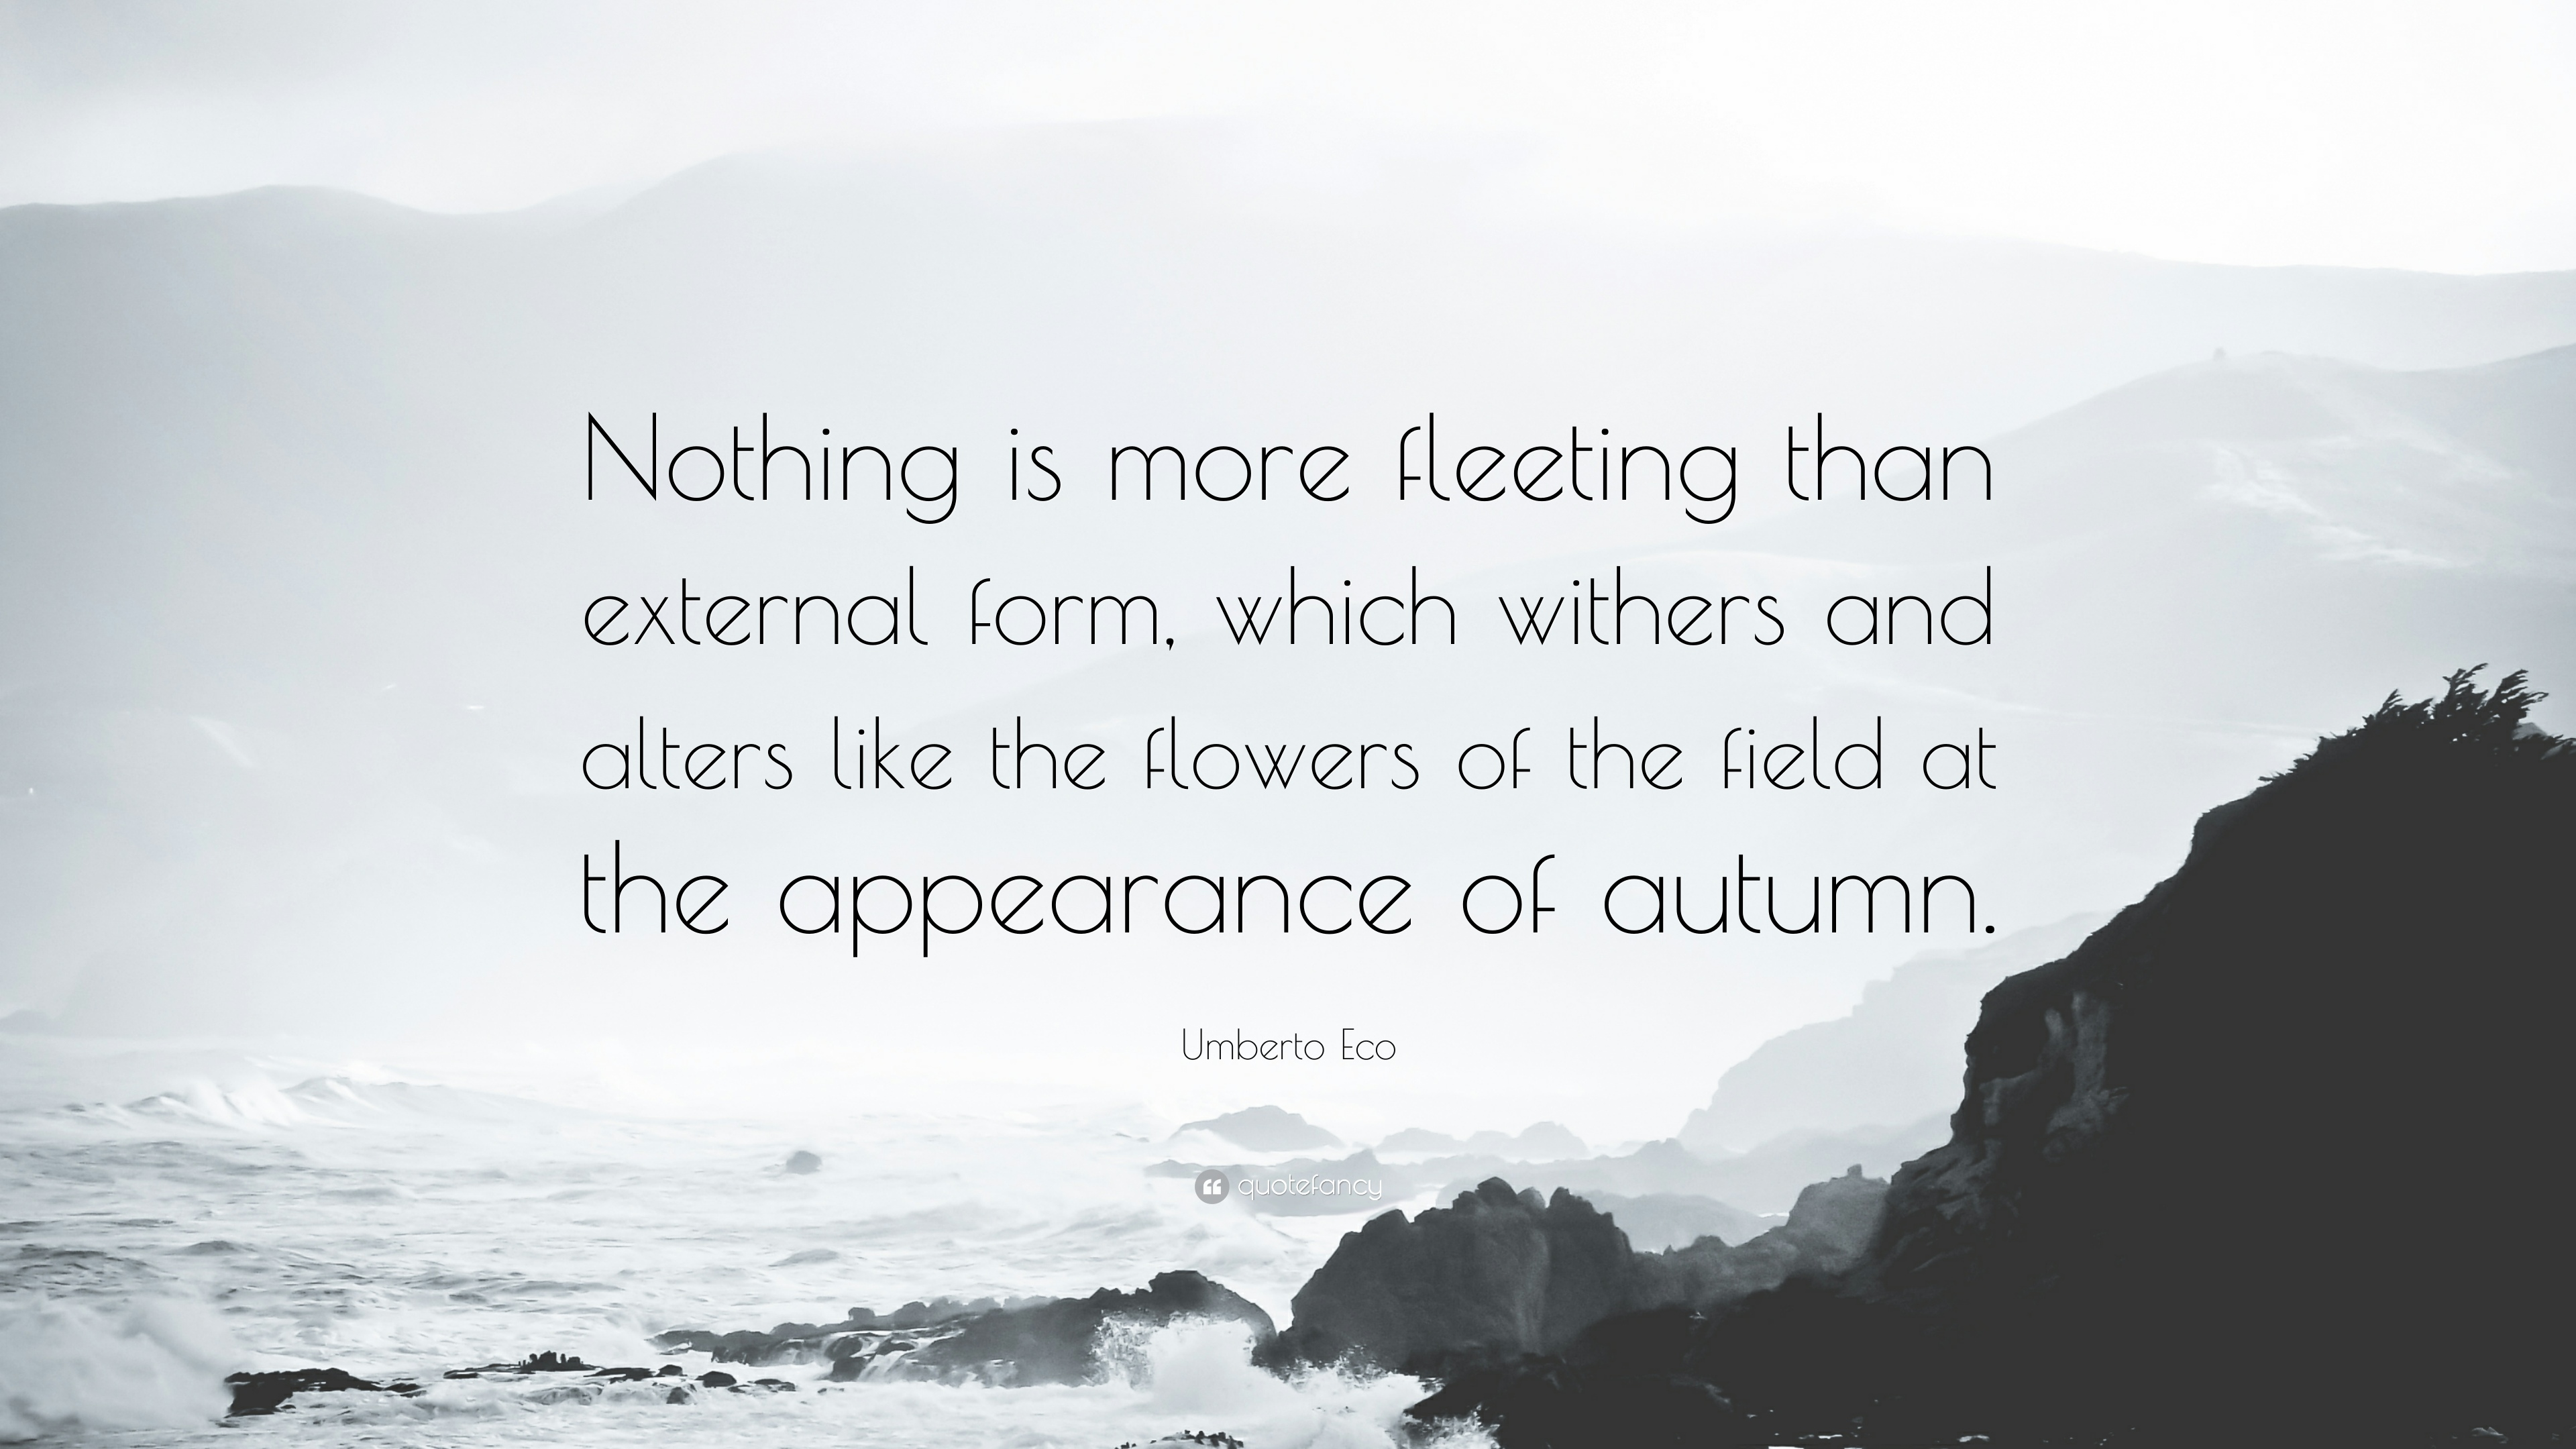 Captivating Umberto Eco Quote: U201cNothing Is More Fleeting Than External Form, Which  Withers And